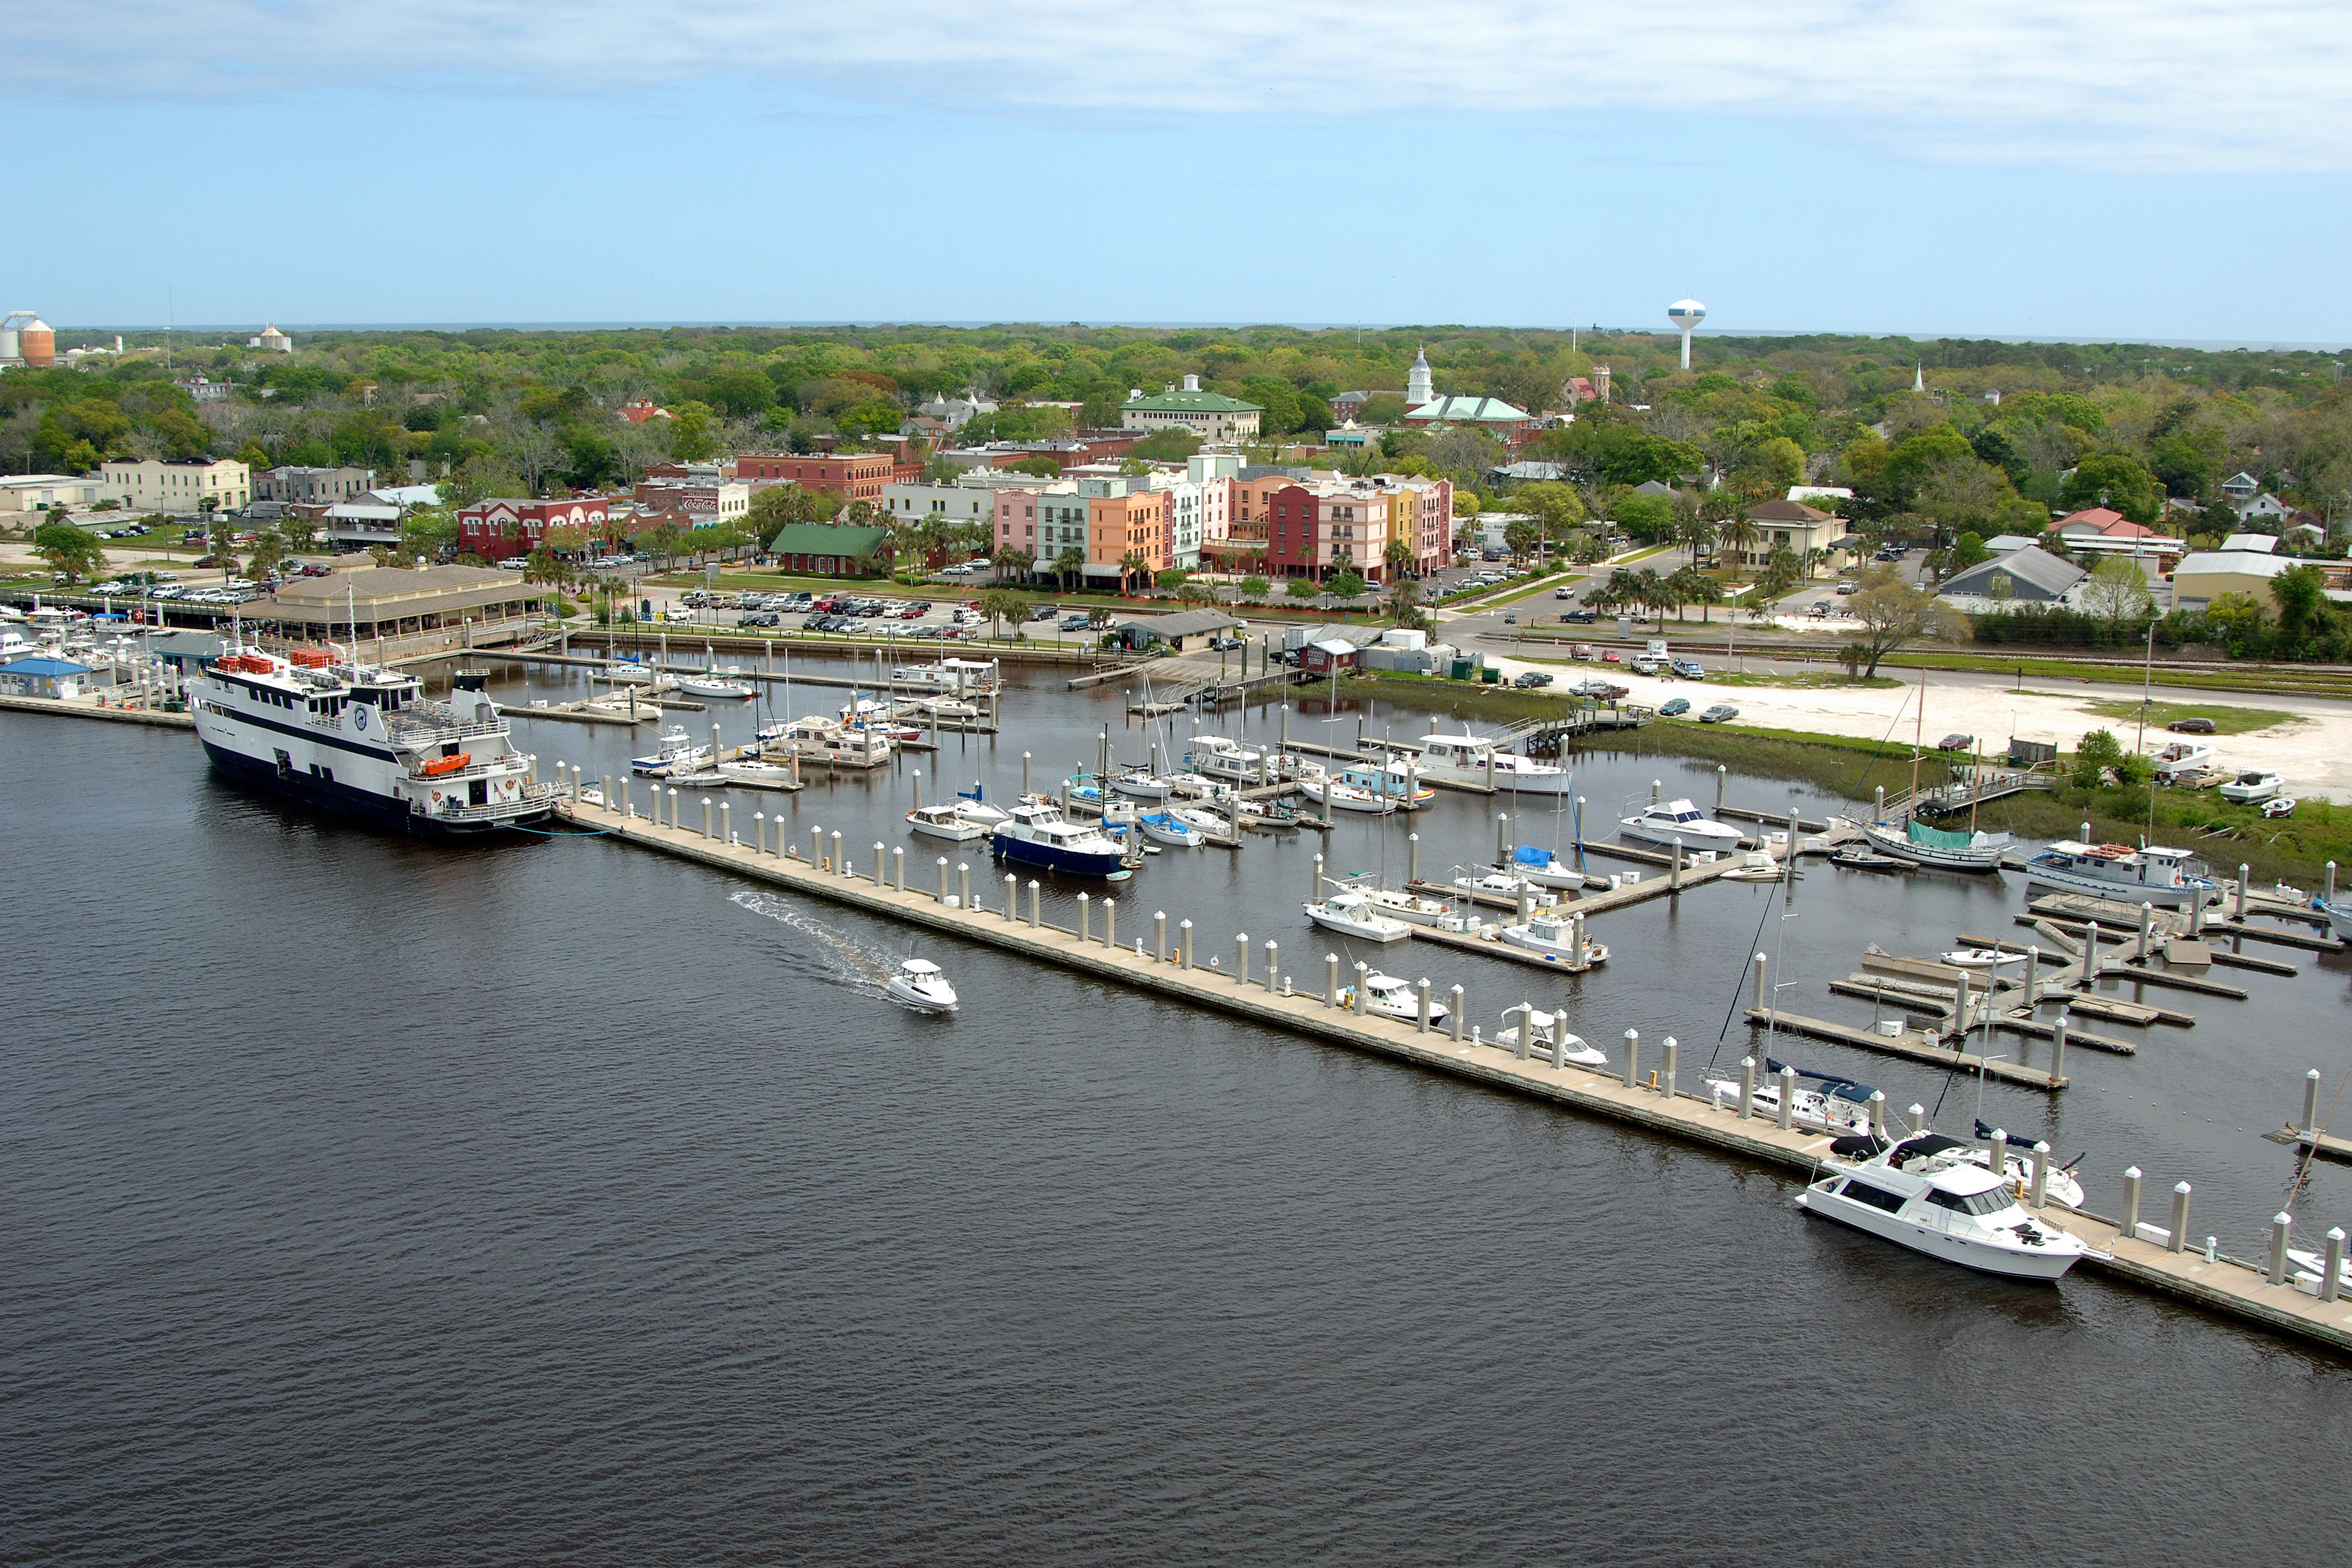 Fernandina Harbor Marina in Fernandina Beach, FL, United States - Marina  Reviews - Phone Number - Marinas.com